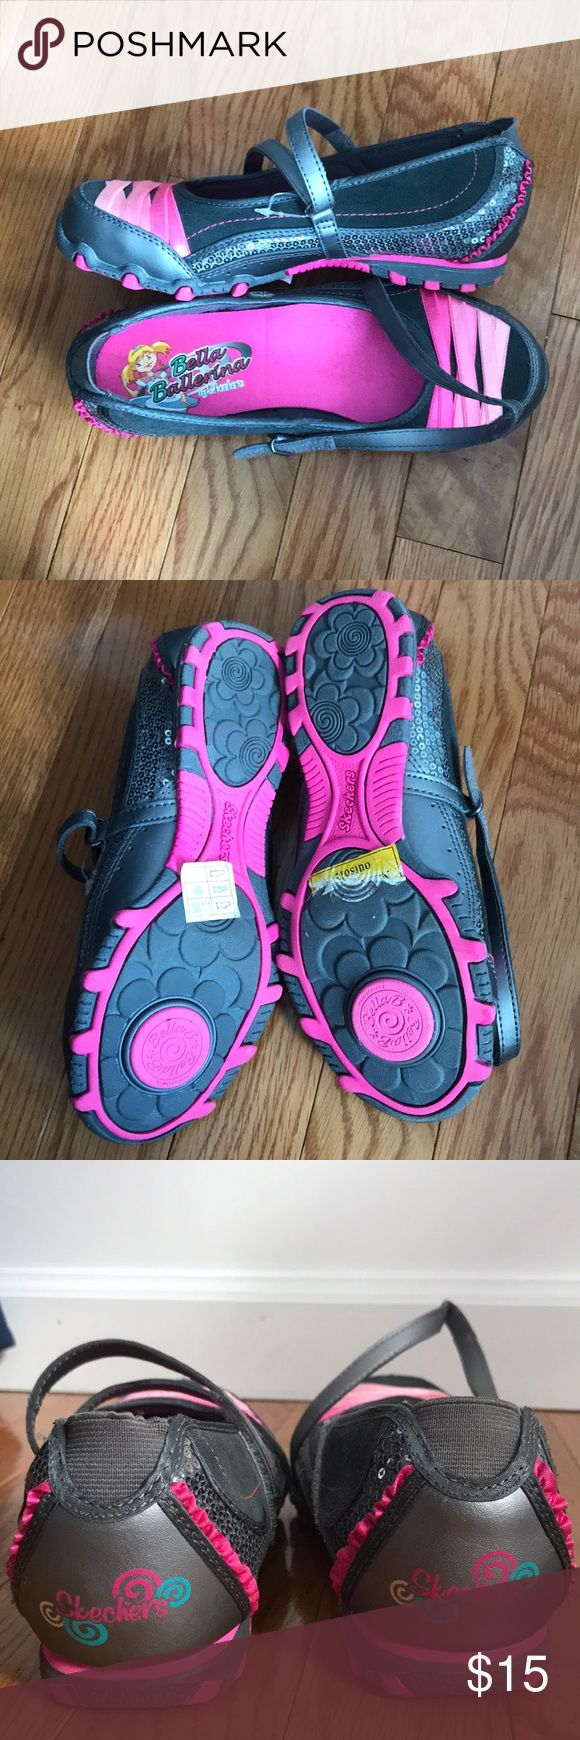 Bella Ballerina by Skechers size US child 3. Grey with pink detailing as well as silver sequins. Rubber turner on the bottom that allows one to spin on any surface! Super cute and sooo much fun!! Skechers Shoes Sneakers